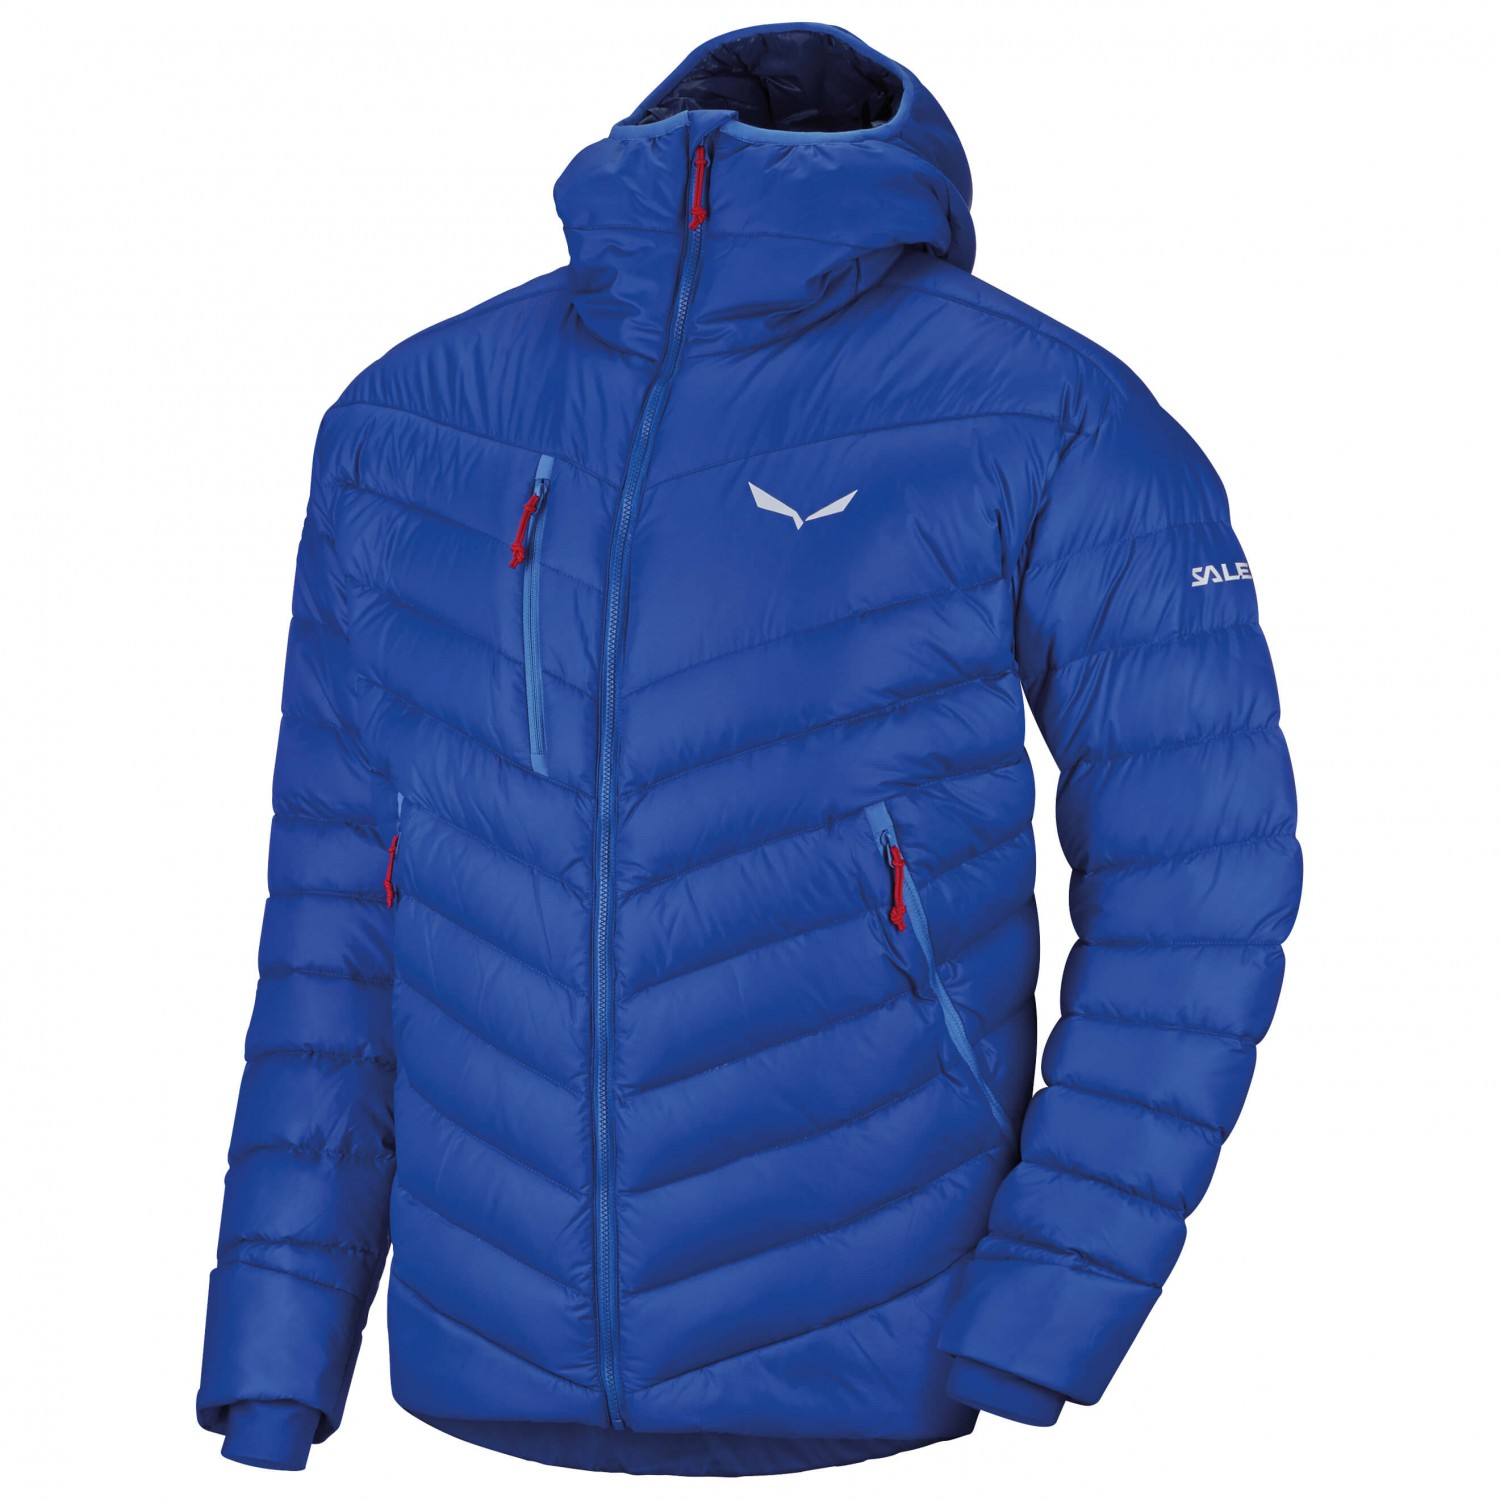 wholesale dealer d7dac 440bb Salewa Ortles Medium Down Jacket - Giacca in piumino Uomo ...